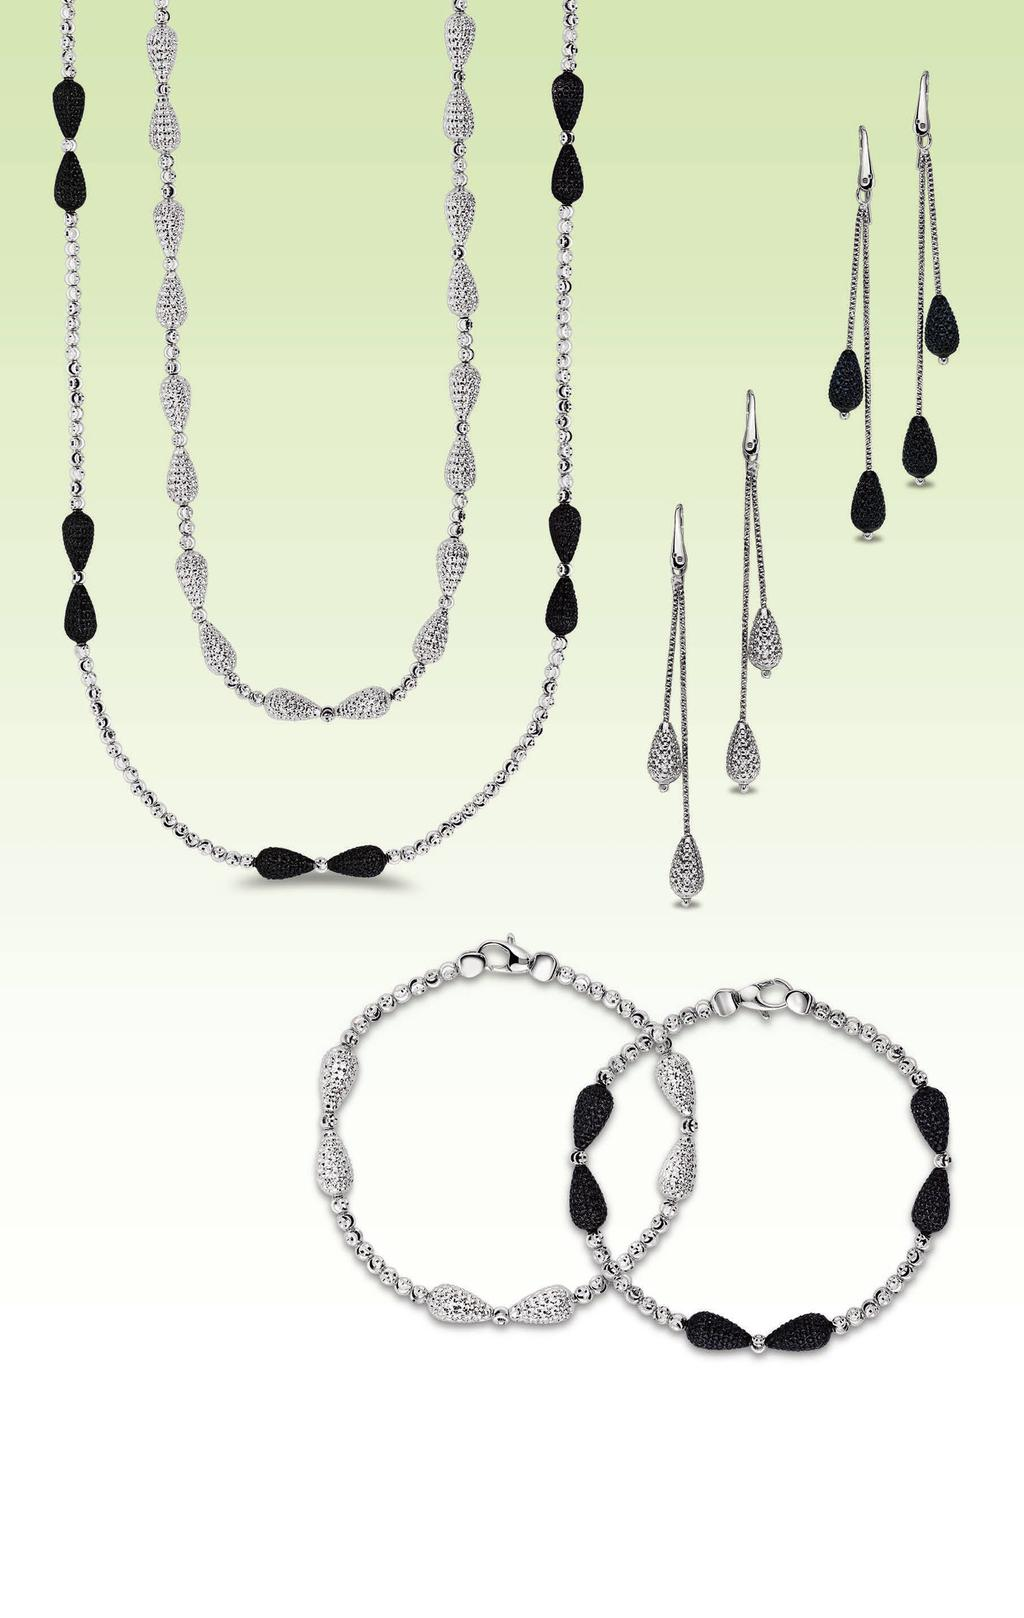 A A. 925 sterling silver, platinum plating, diamond cut bead necklace, 16 + extender, $275. 925 sterling silver, platinum & rhodium plating, diamond cut bead 36 necklace, $385.